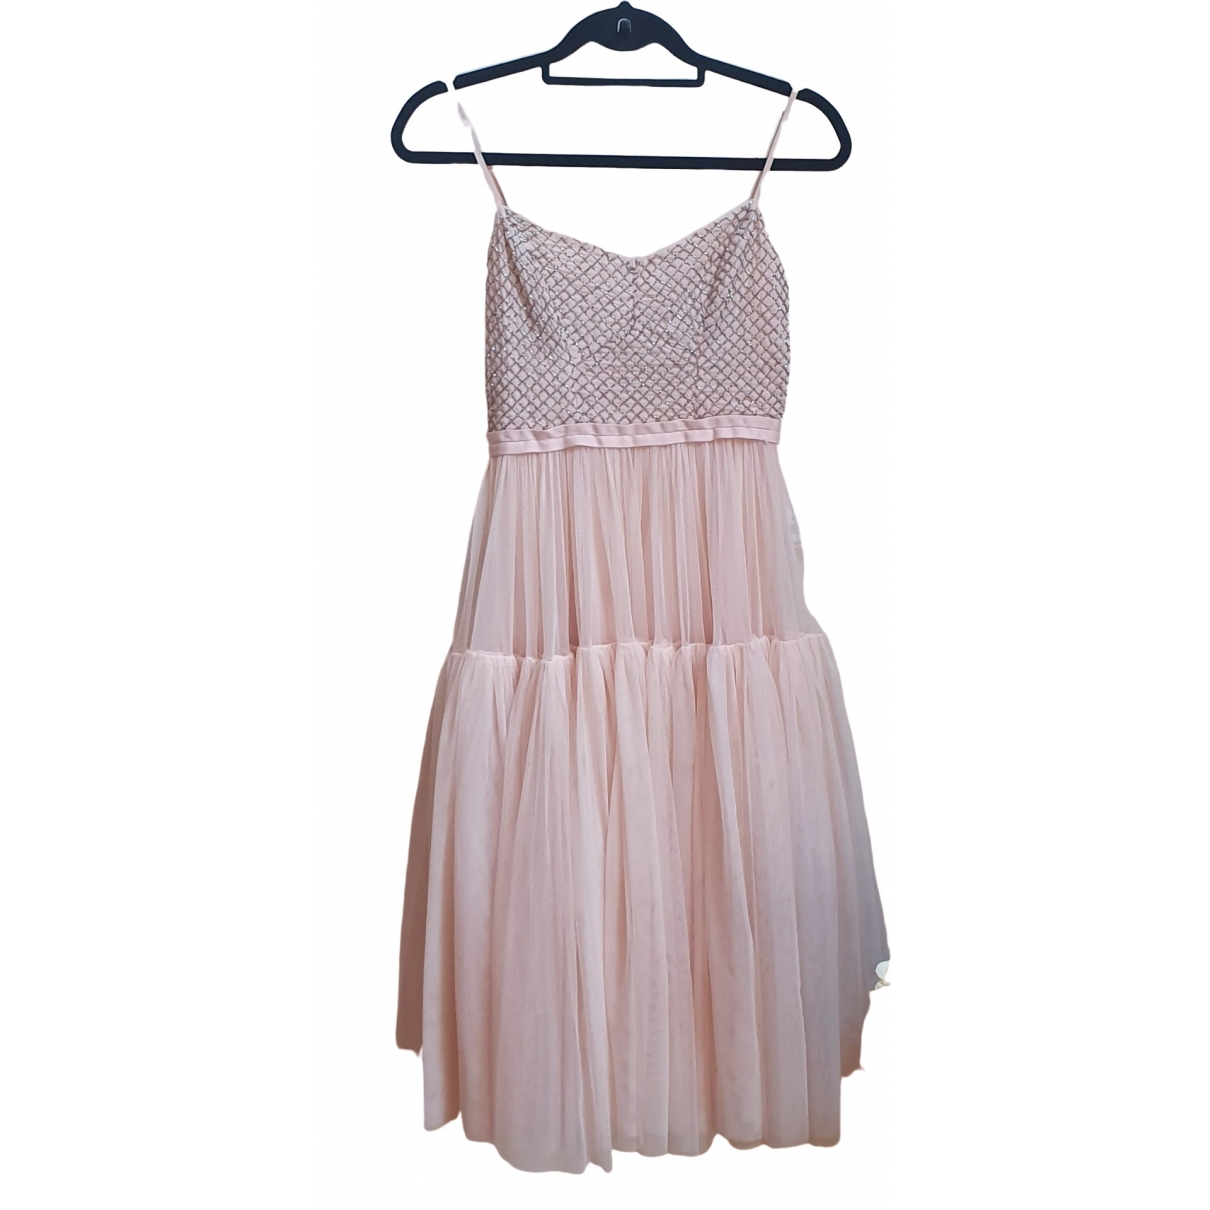 Needle & Thread \N Pink dress for Women 8 UK